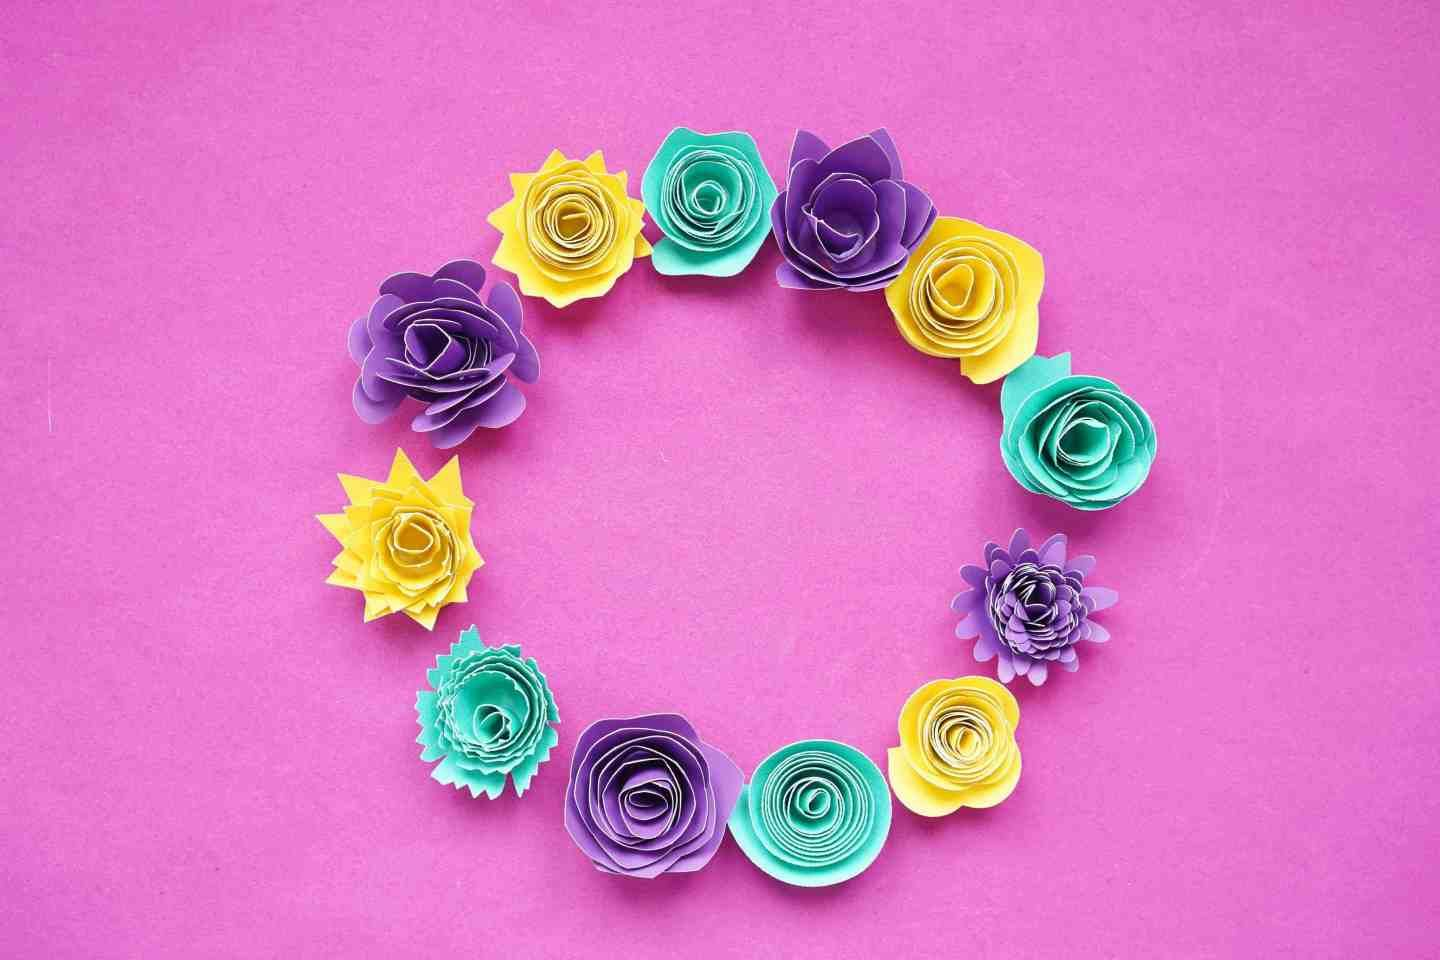 12 Free Rolled Flower Svg Templates Diy 3d Paper Flowers Free